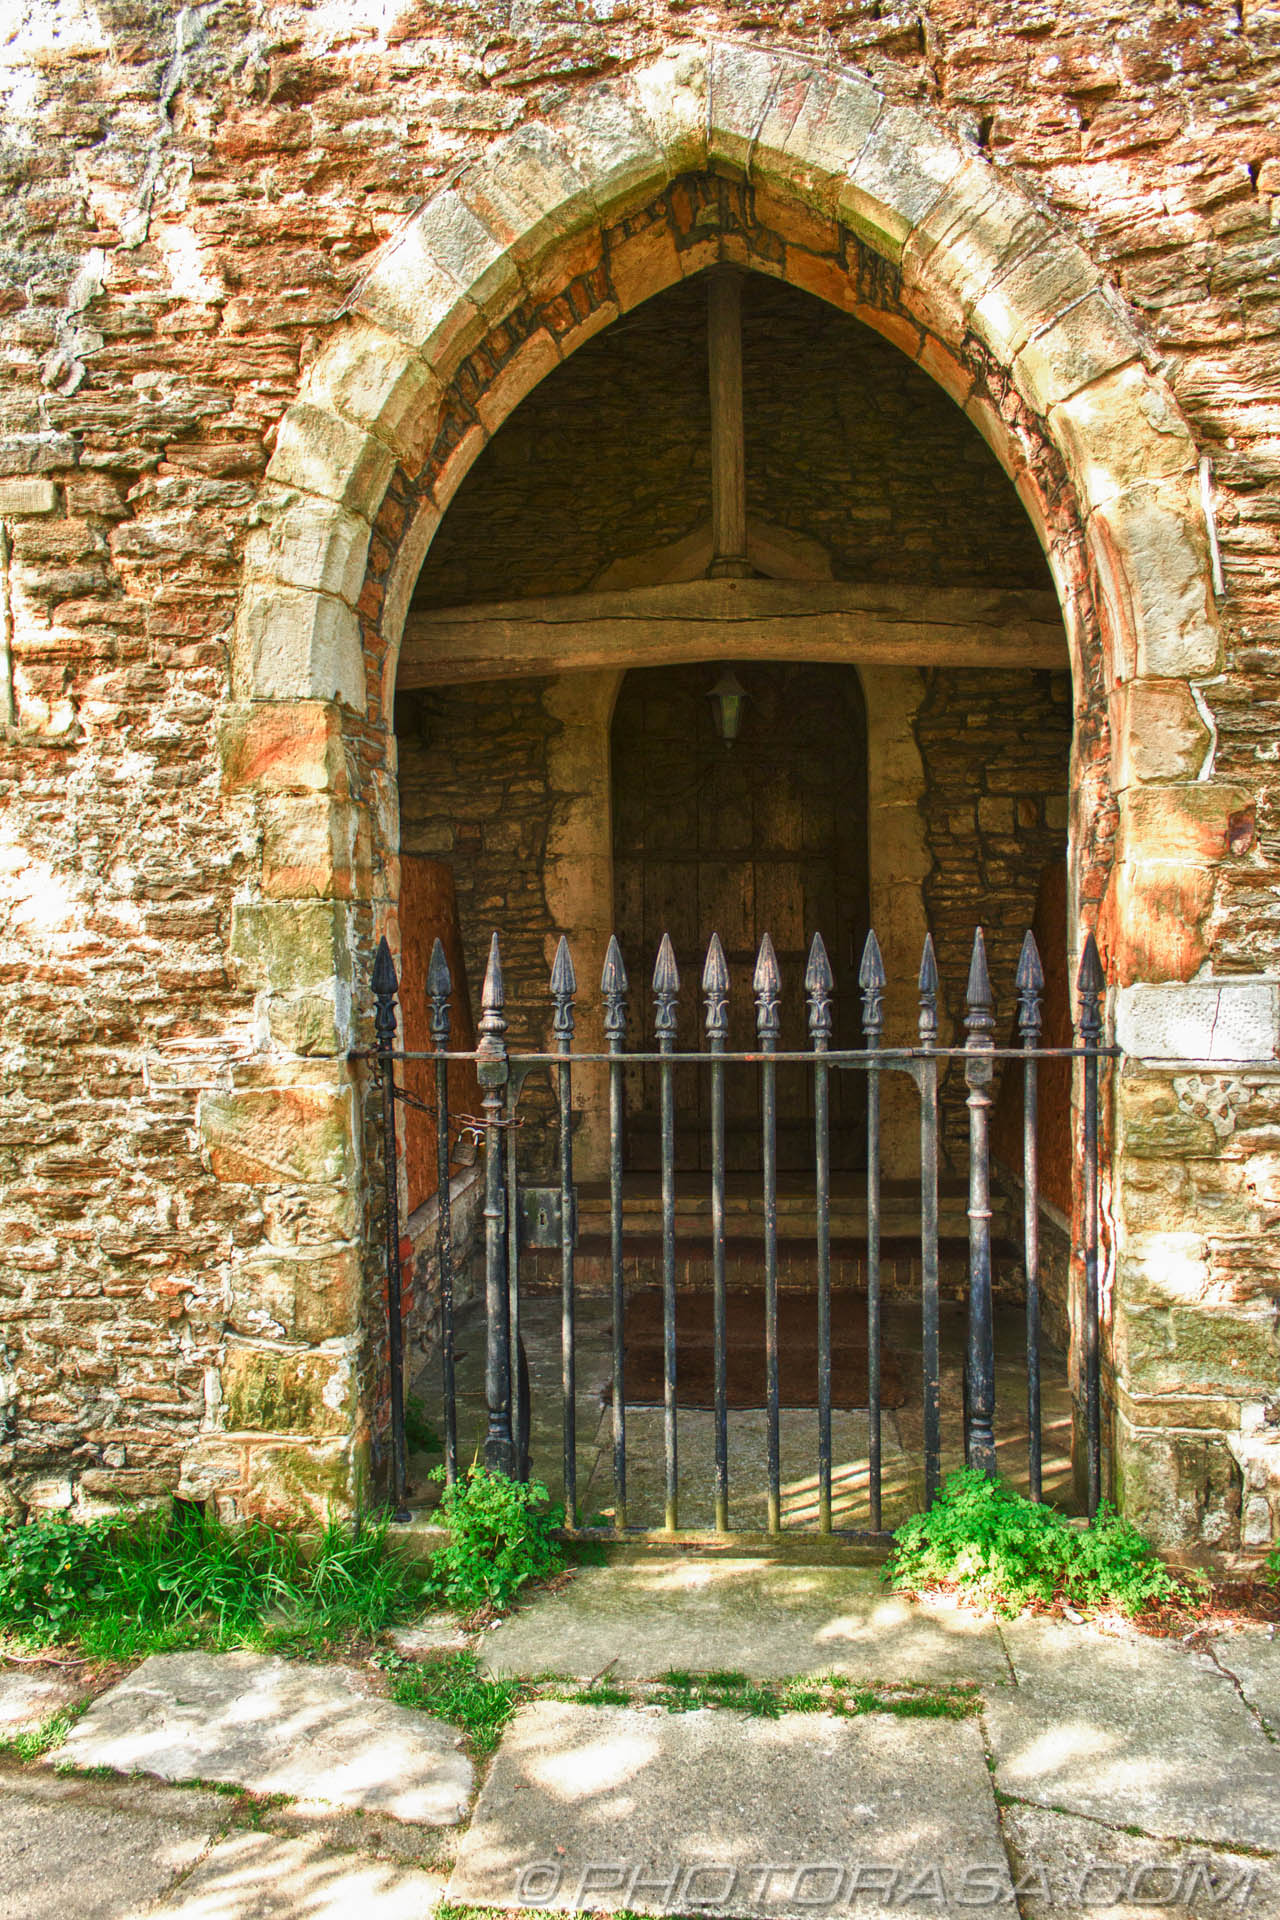 http://photorasa.com/saints-church-staplehurst-kent/blocked-norman-arch/